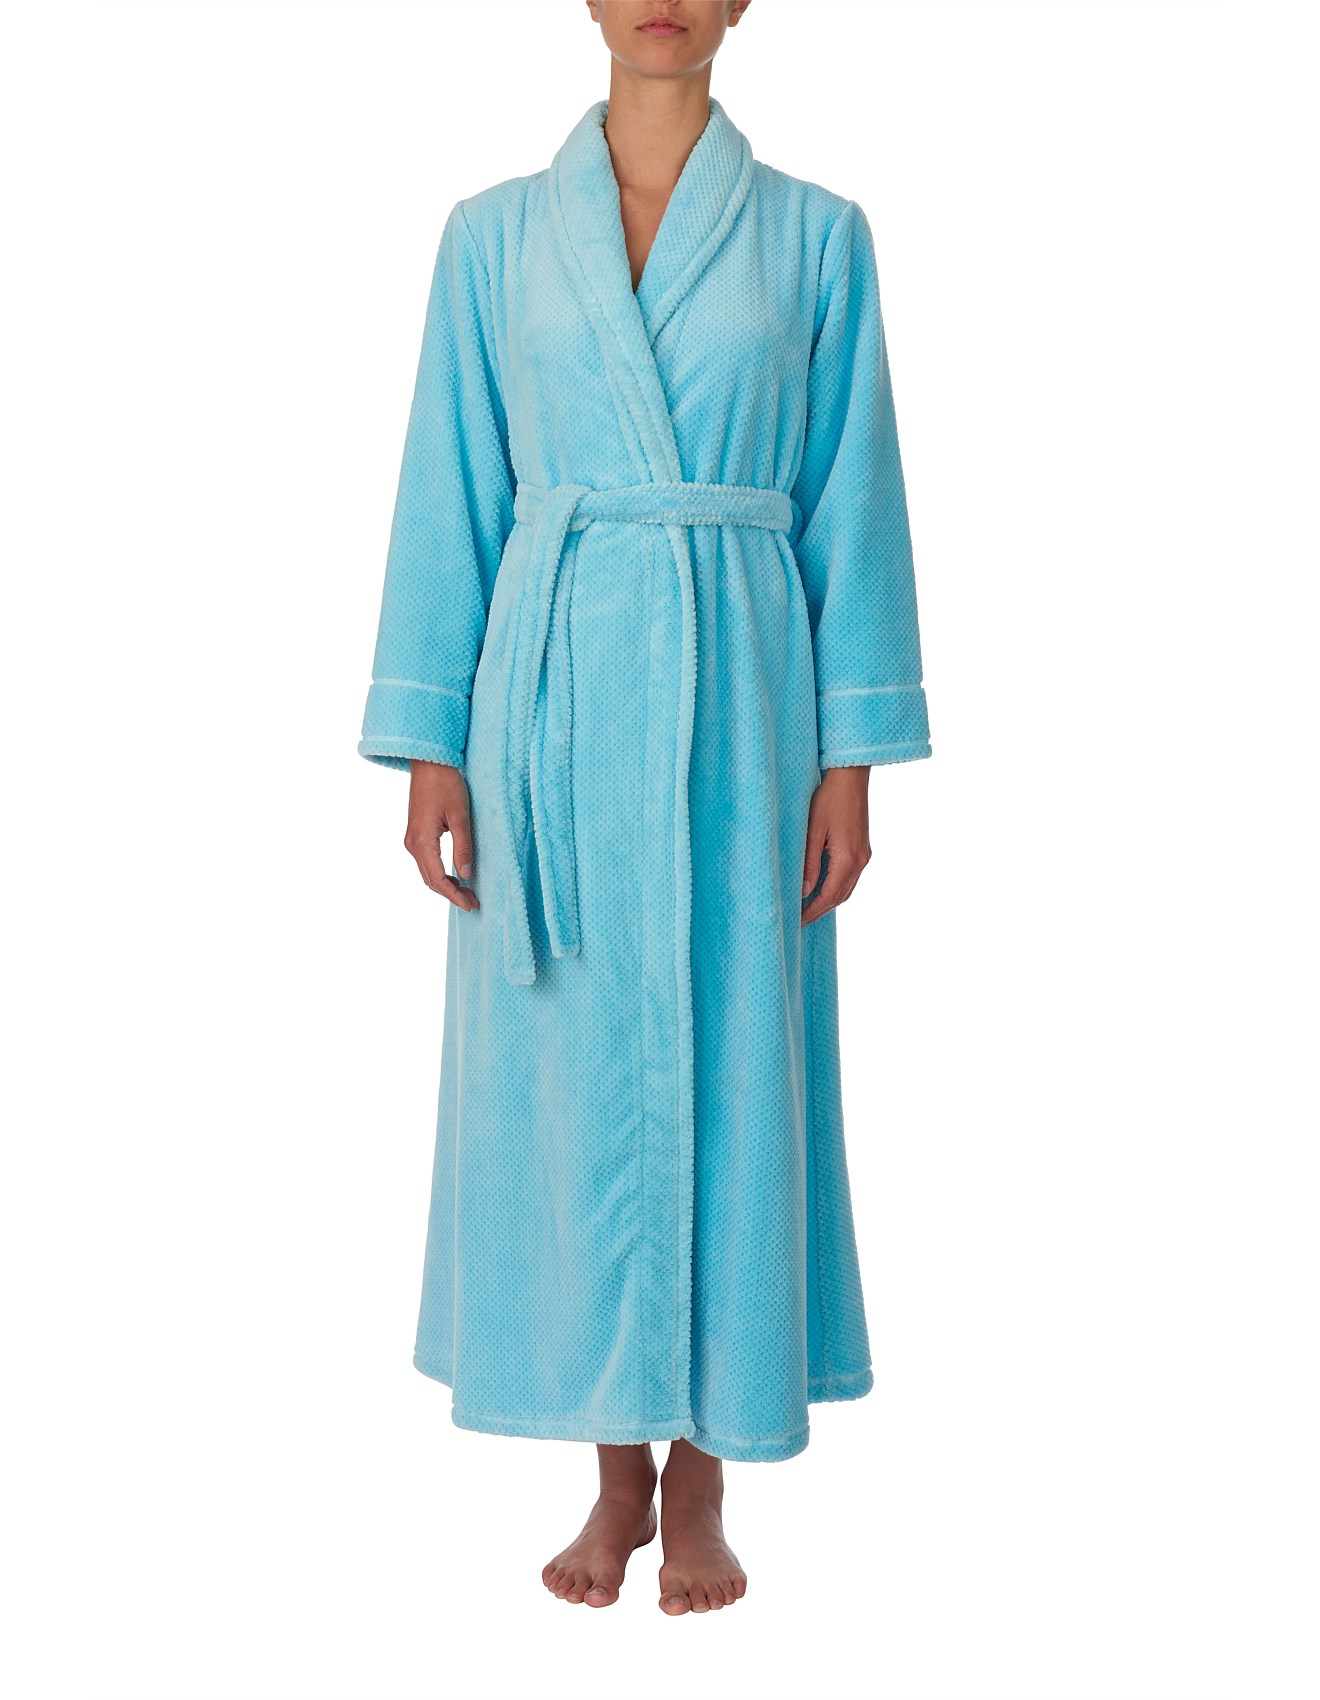 Dressing Gowns & Robes - Long Wrap Gown